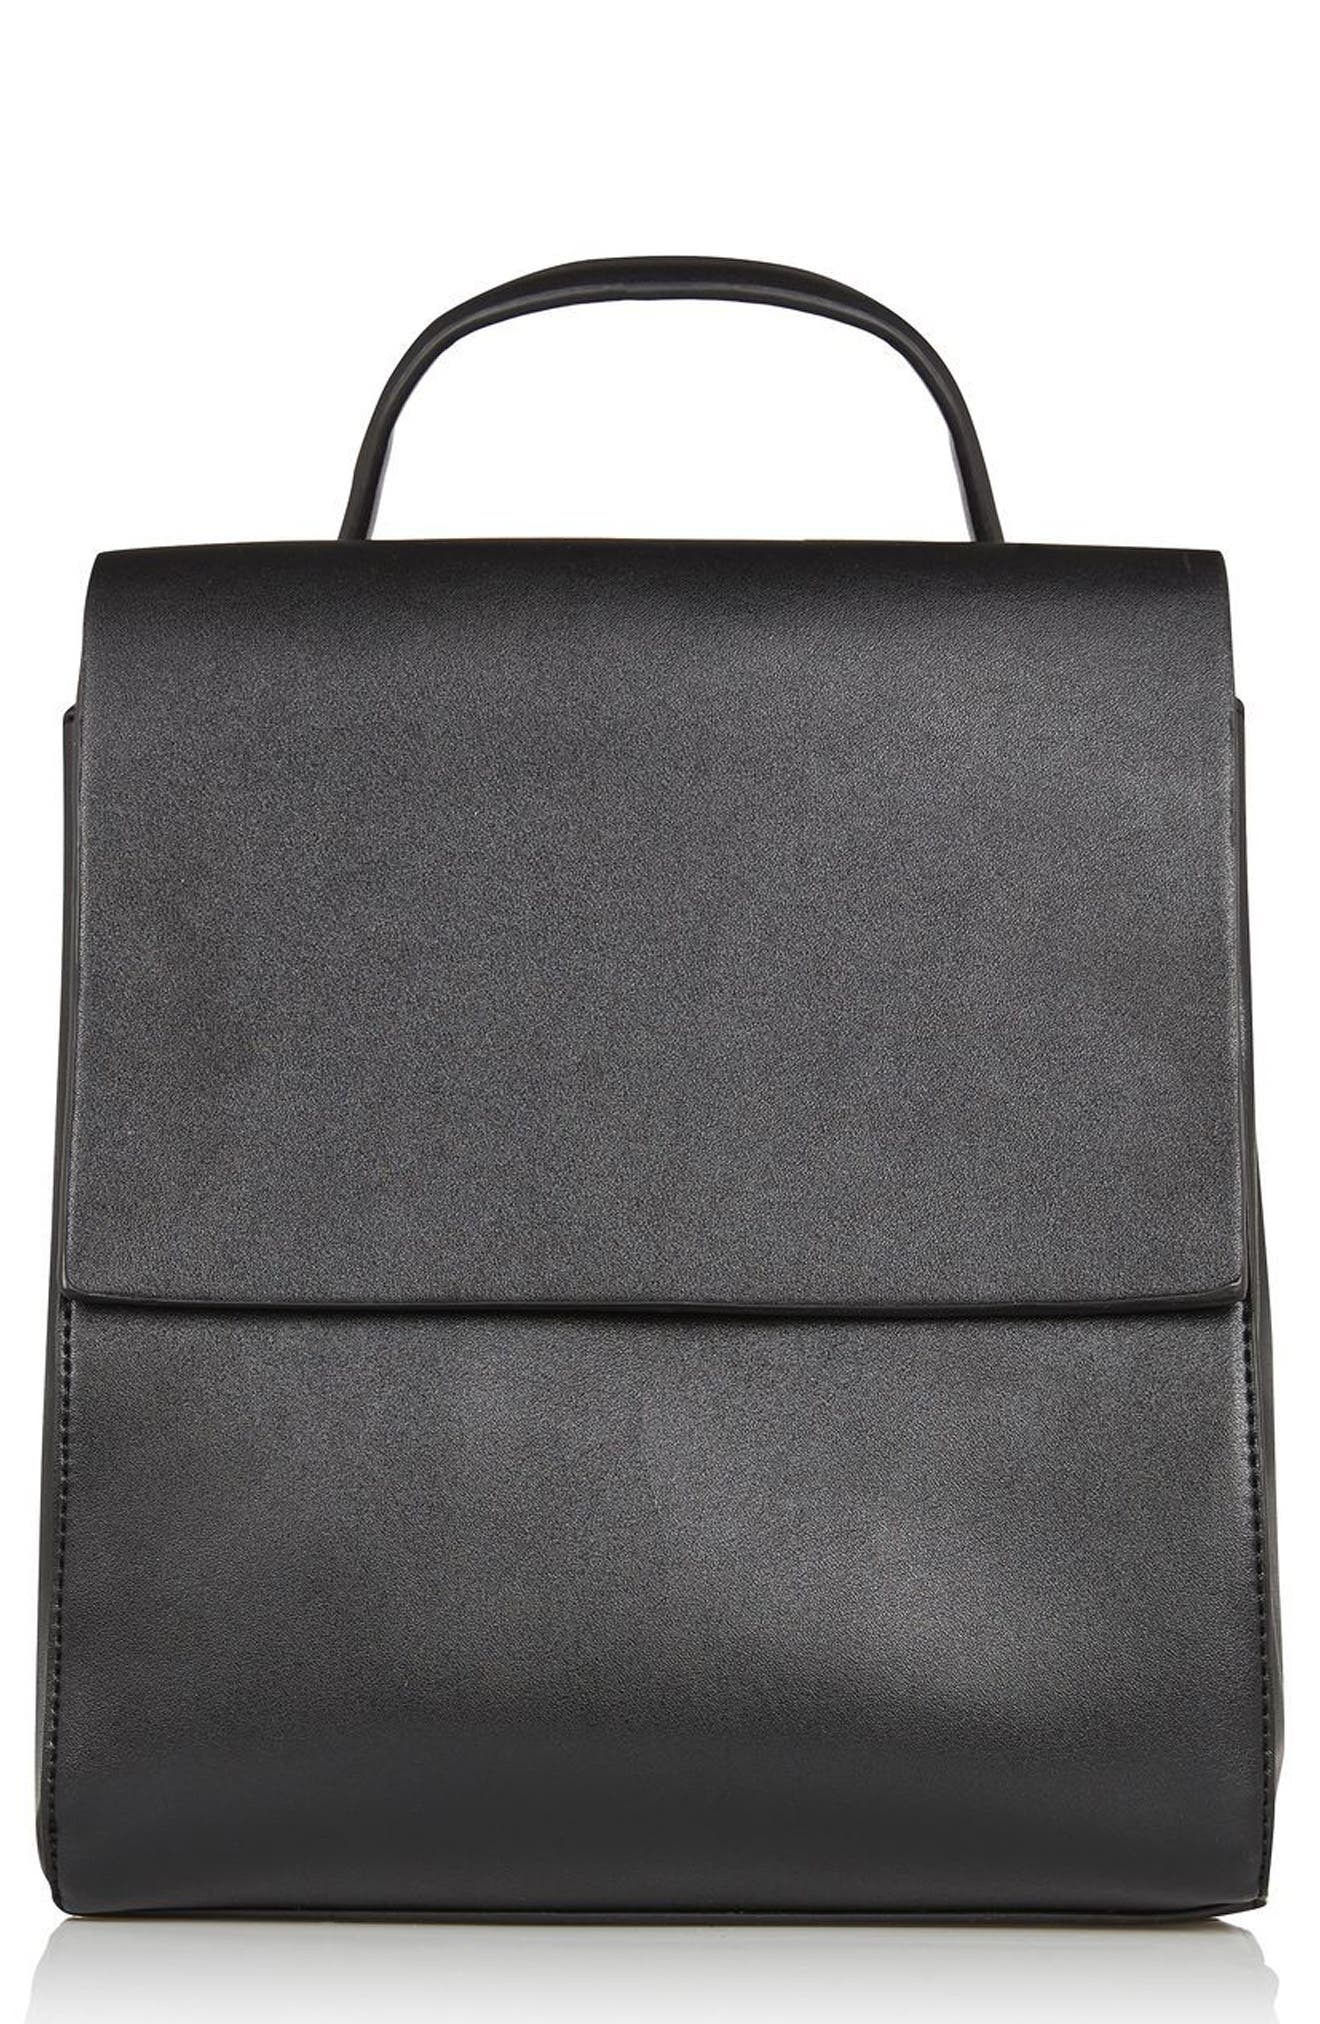 Alternate Image 1 Selected - Topshop Mini Scandi Faux Leather Backpack